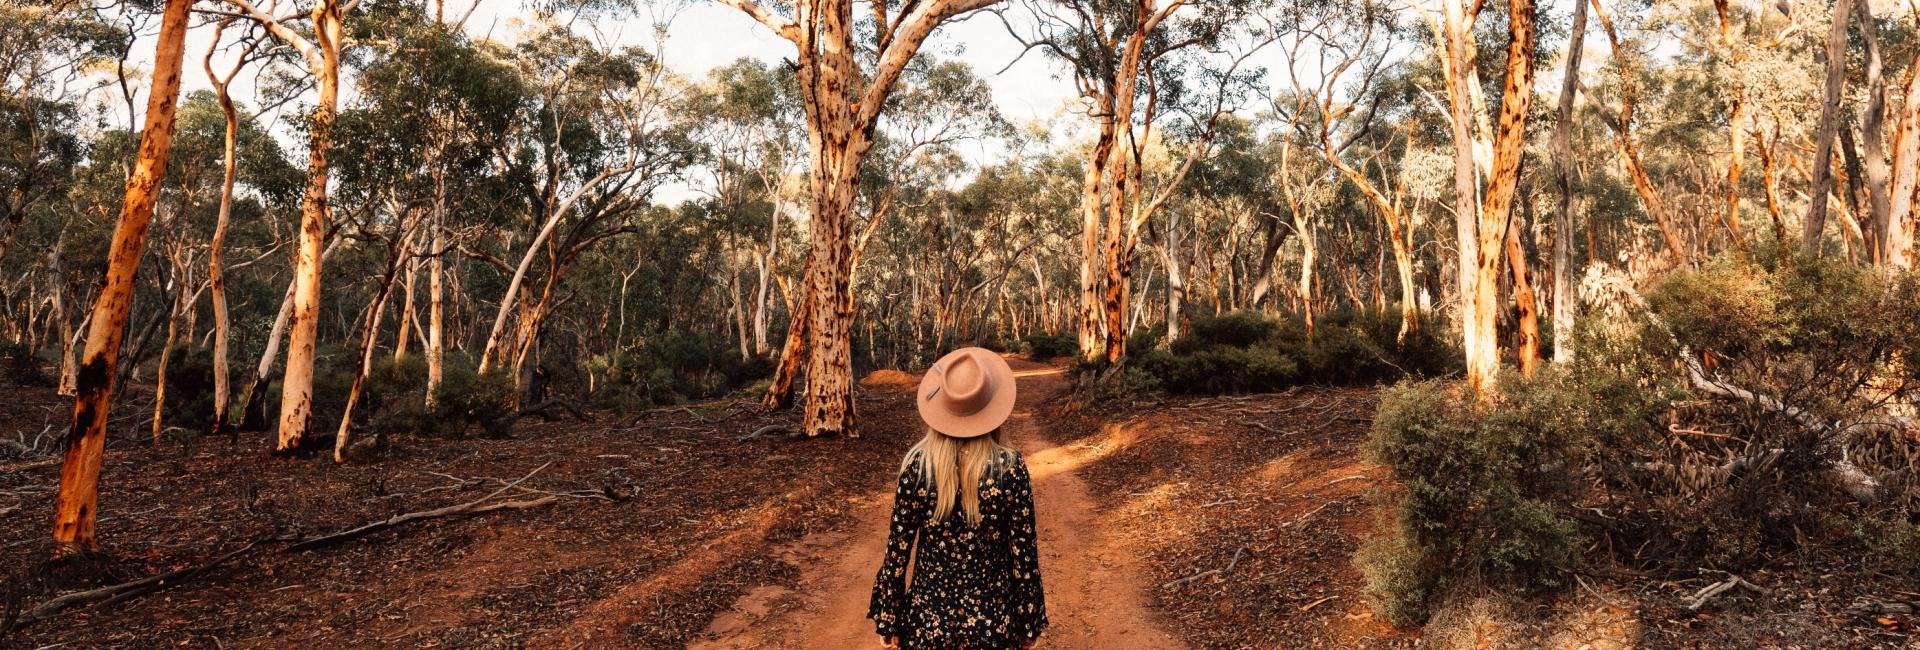 melissa-findley-high-res-wheatbelt-dryandra_woodland-jumbotron